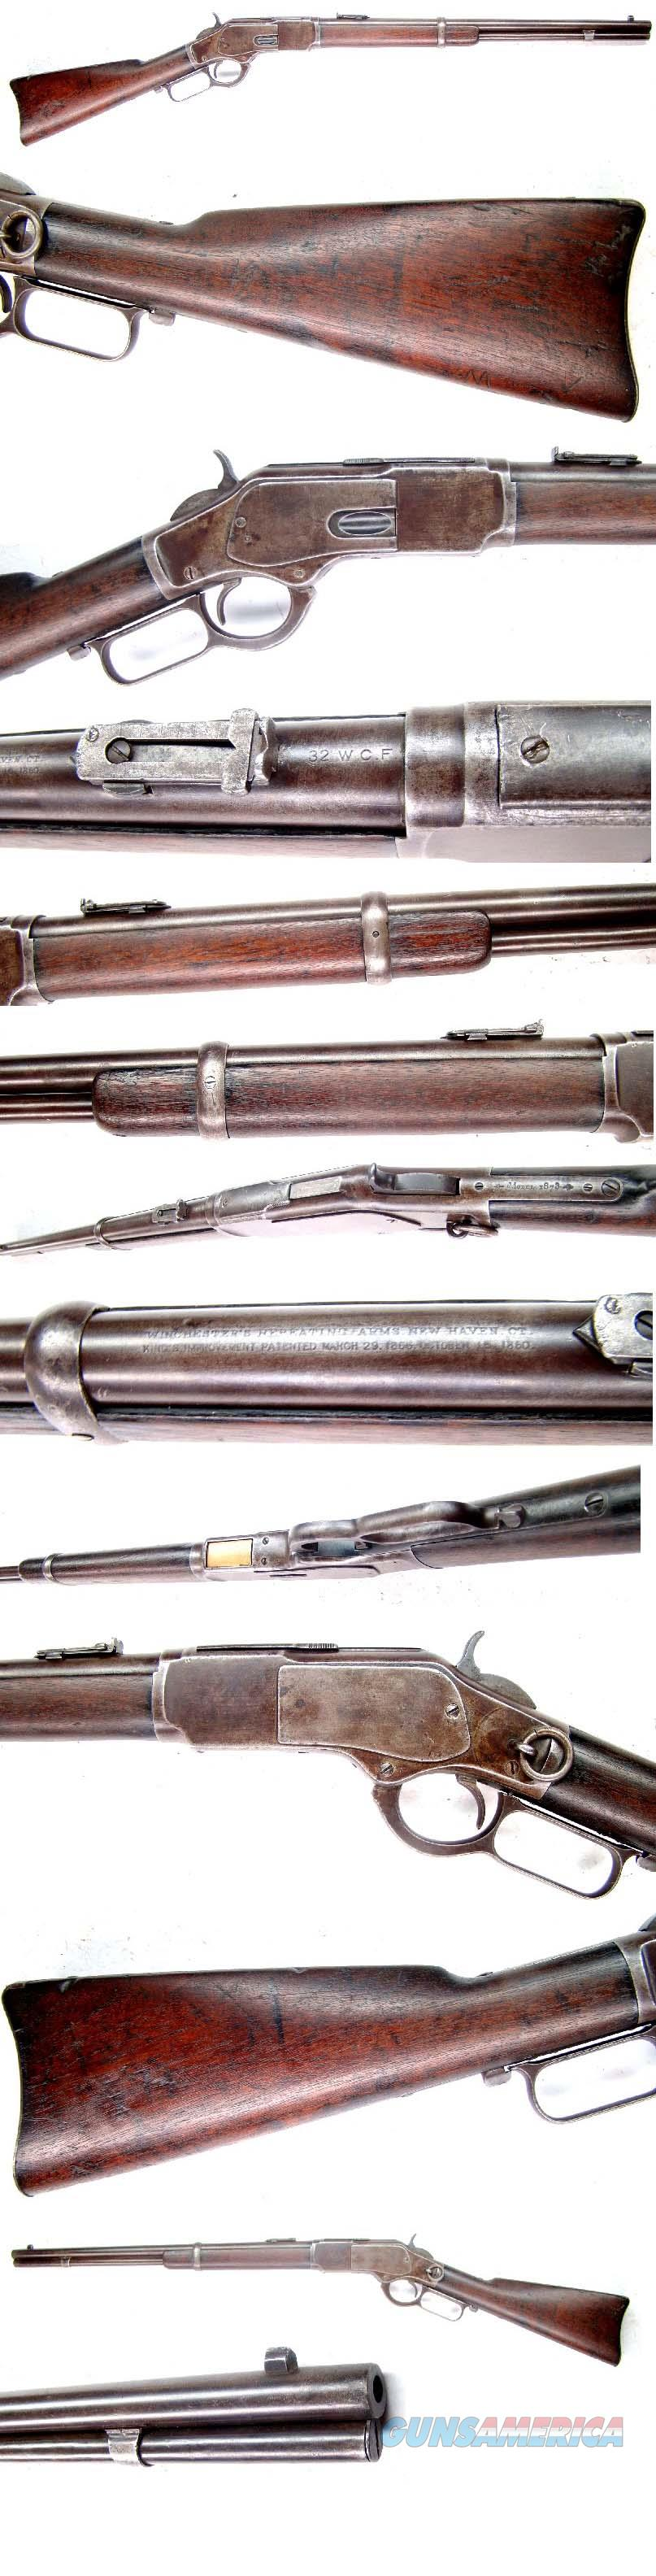 Winchester Model 1873 Saddle Ring Carbine 32-20  Guns > Rifles > Winchester Rifles - Pre-1899 Lever